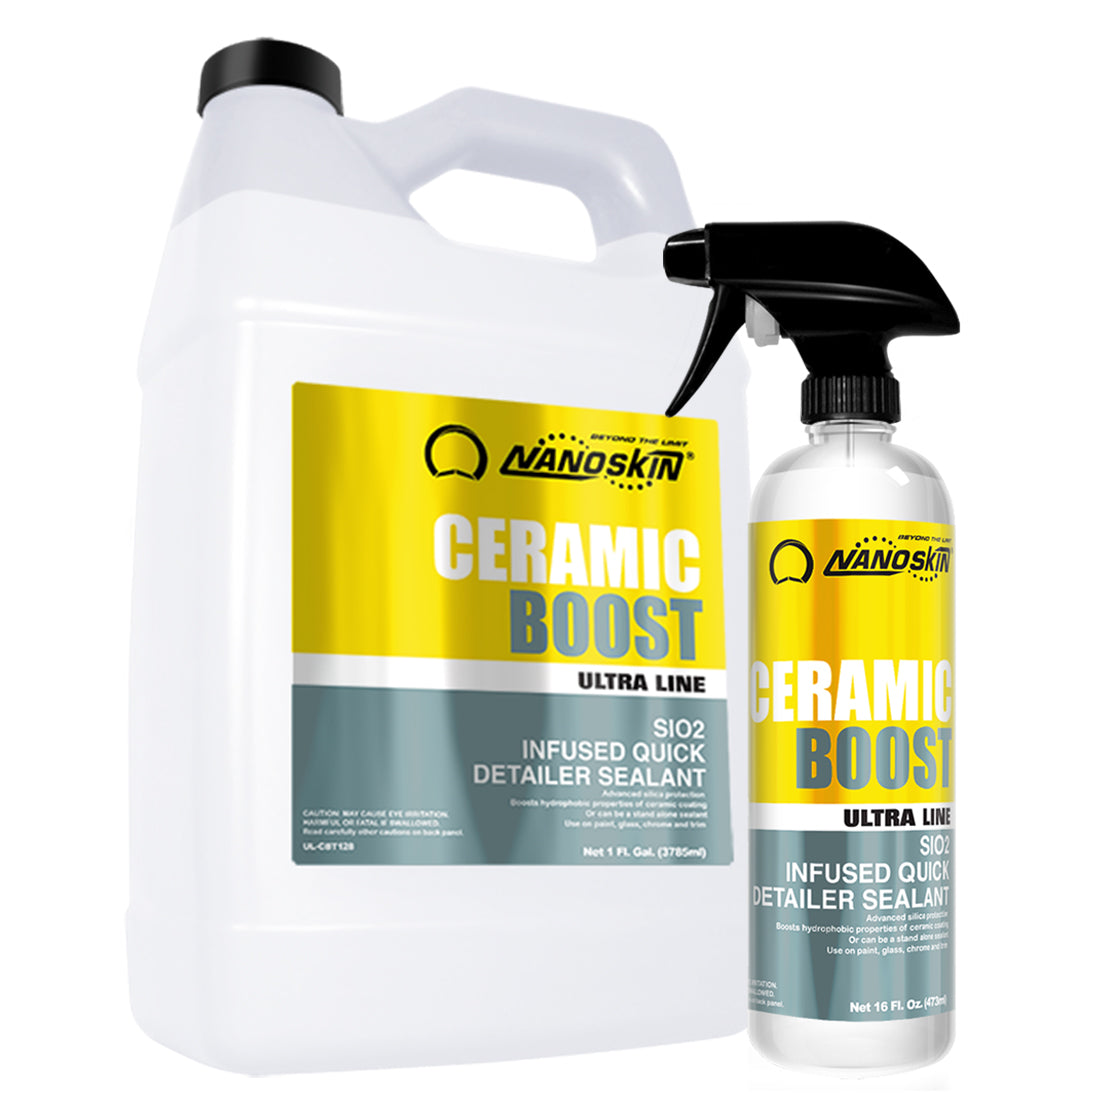 (UL-CBT) CERAMIC BOOST SiO2 Infused Quick Detailer Sealant